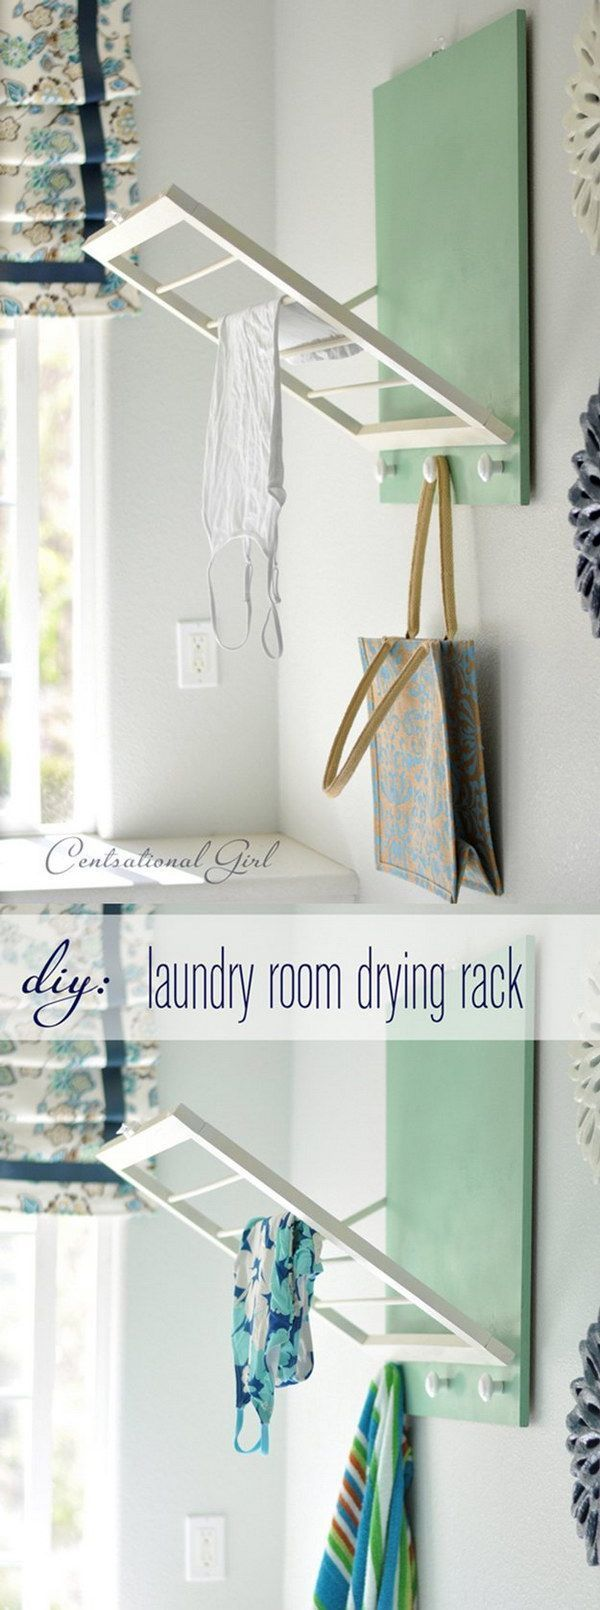 Laundry room ideas drying racks cute laundry rooms utilitarian spaces - Diy Laundry Room Drying Rack This Diy Laundry Room Drying Rack Is Perfect For A